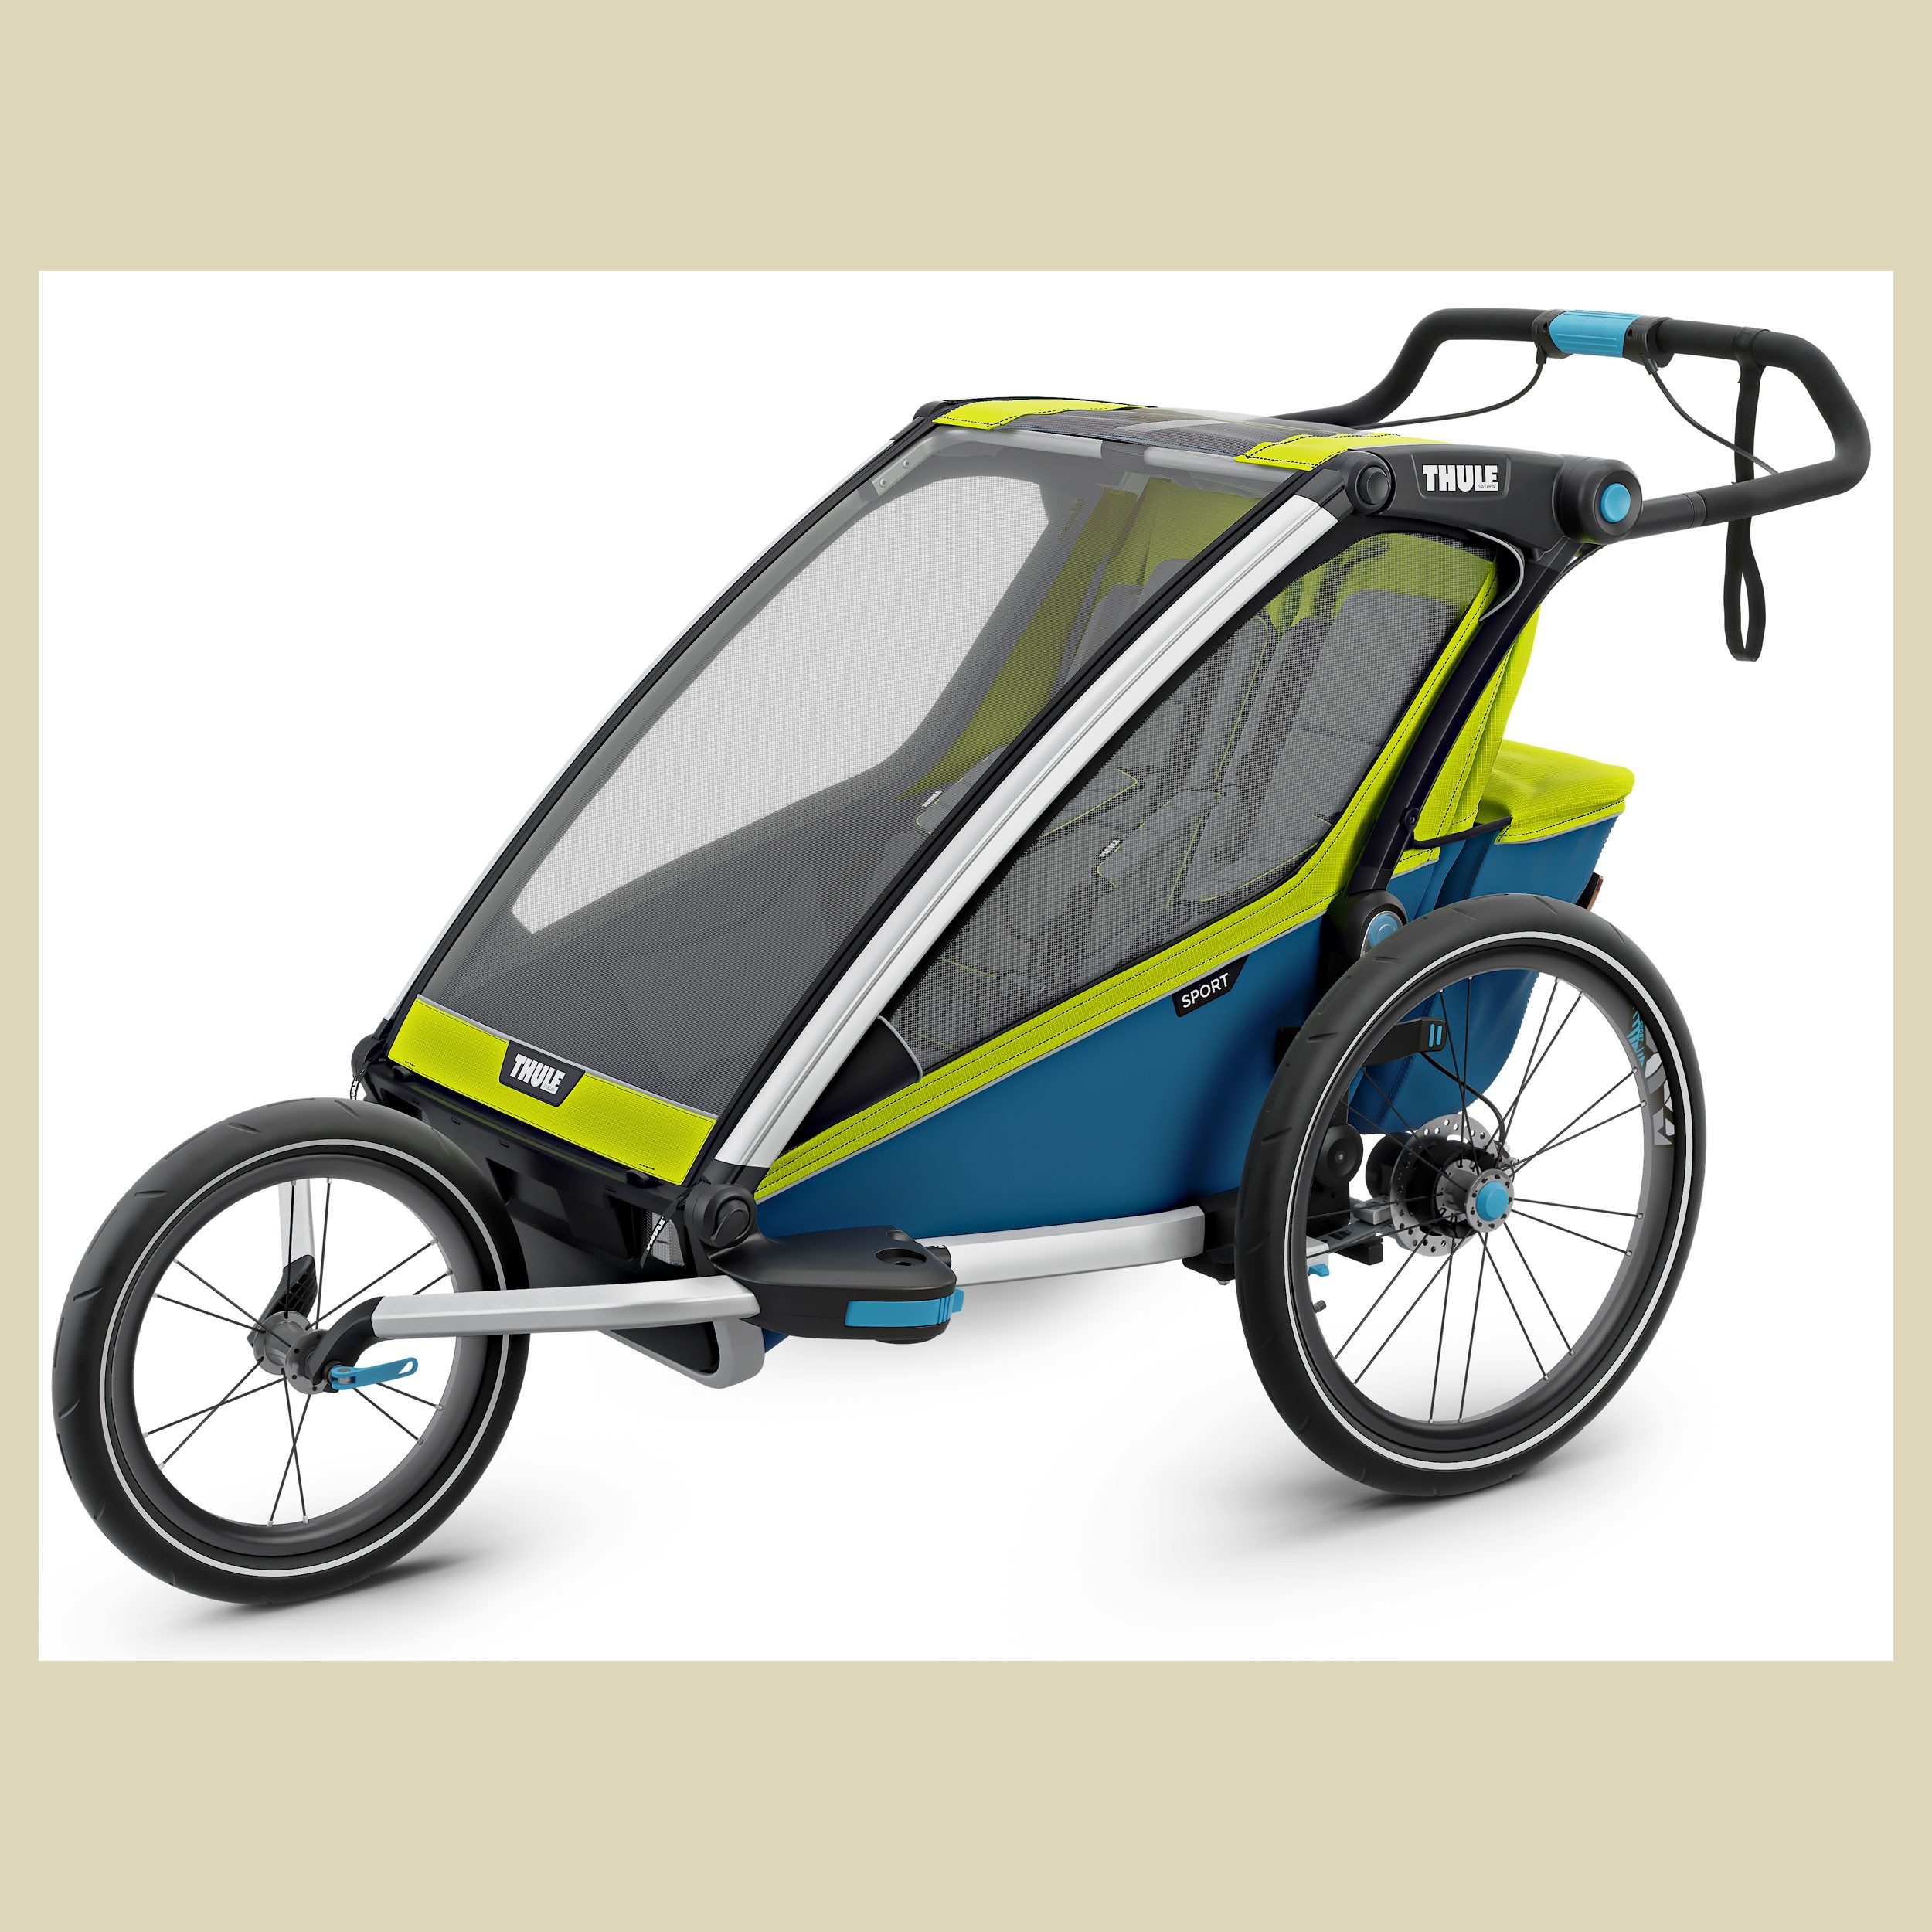 thule chariot sport 2 mit stvzo beleuchtung. Black Bedroom Furniture Sets. Home Design Ideas